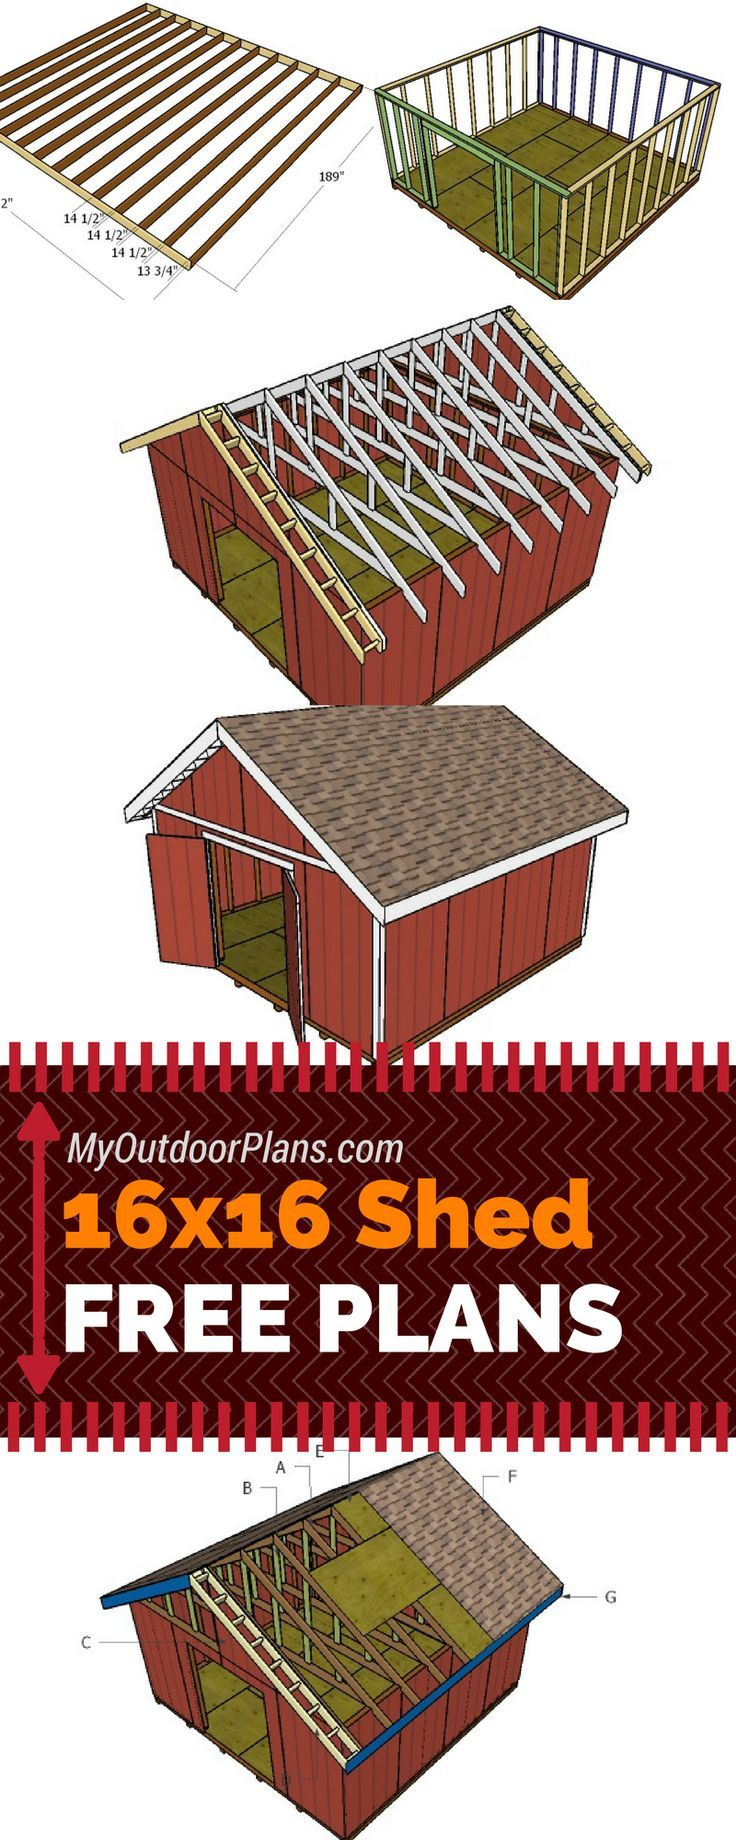 Free plans for you to learn how to build a 16x16 shed with a gable roof. Step by step instructions